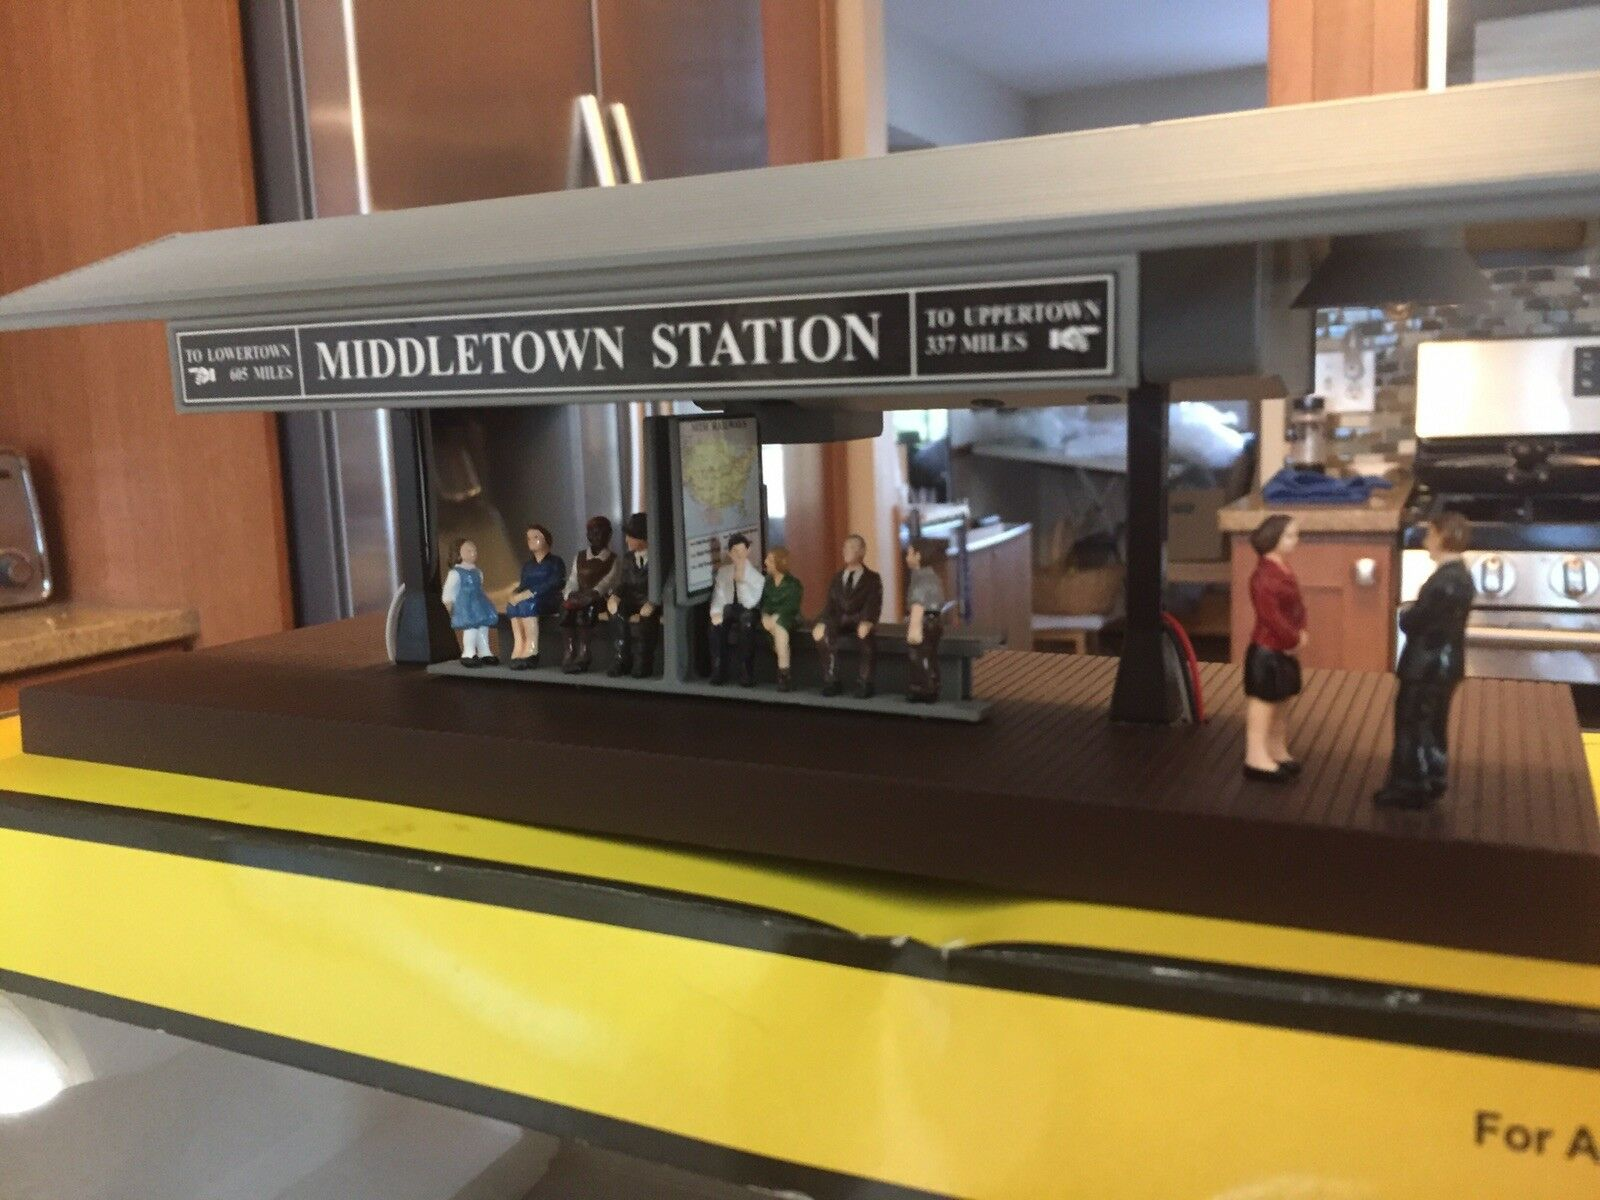 Rare Mth Operating Passenger Station Platform With Controller And Instructions